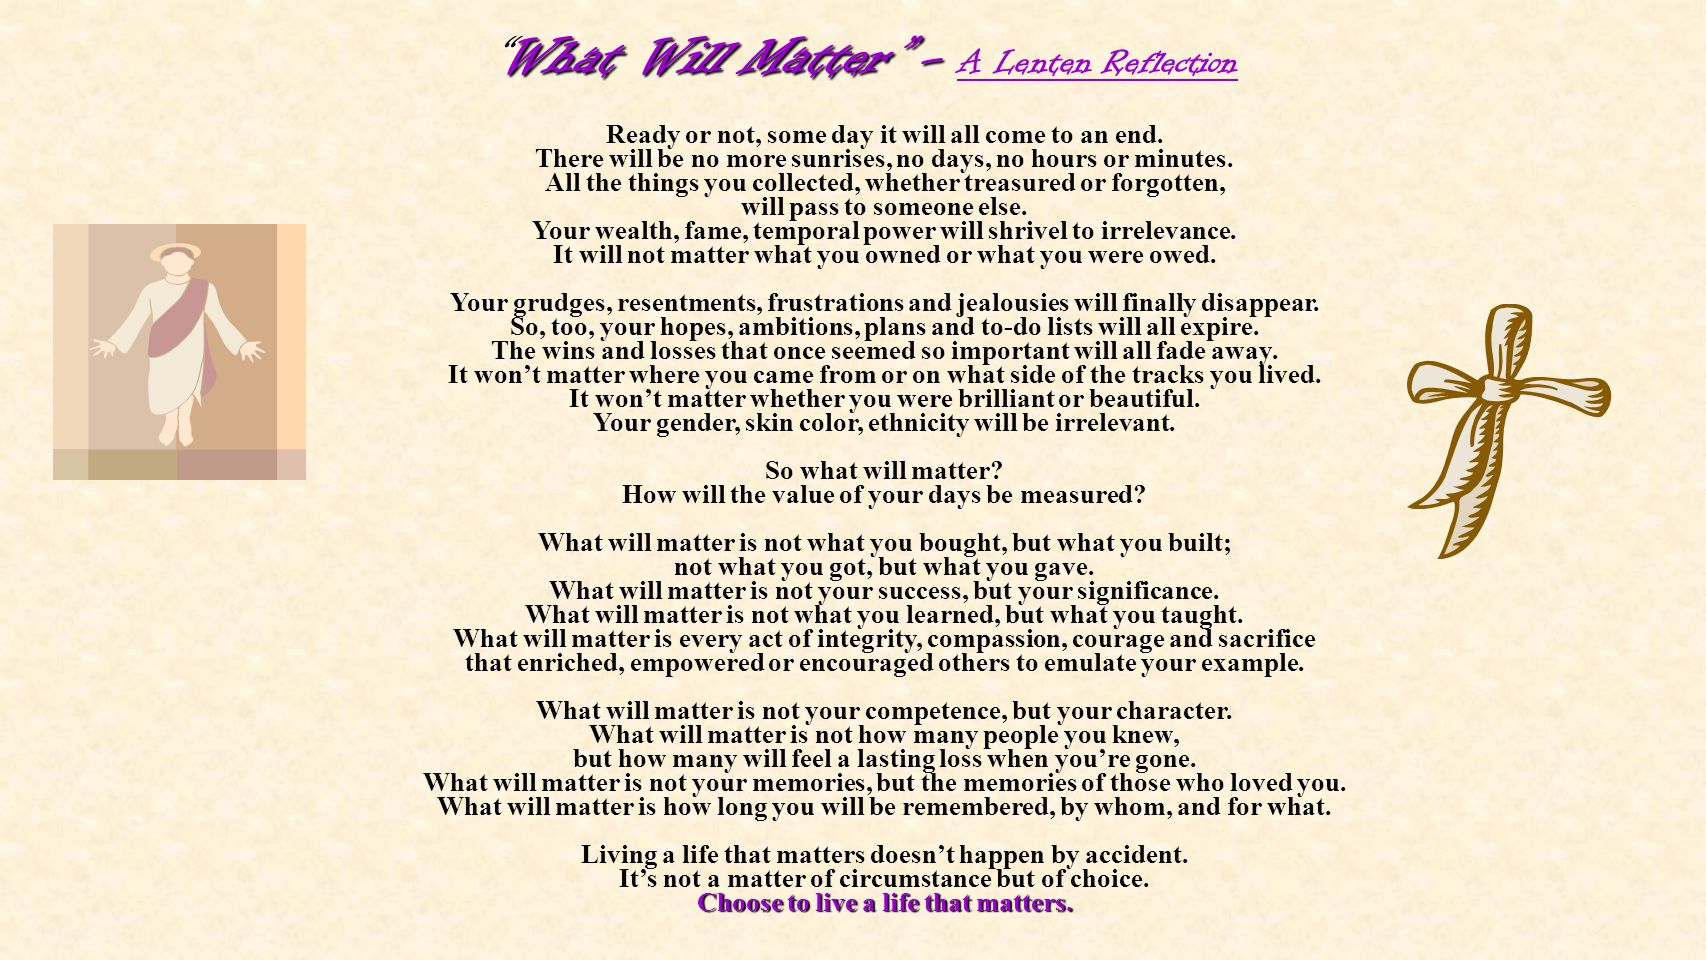 What Will Matter - What Will Matter - A Lenten Reflection Ready or not, some day it will all come to an end.